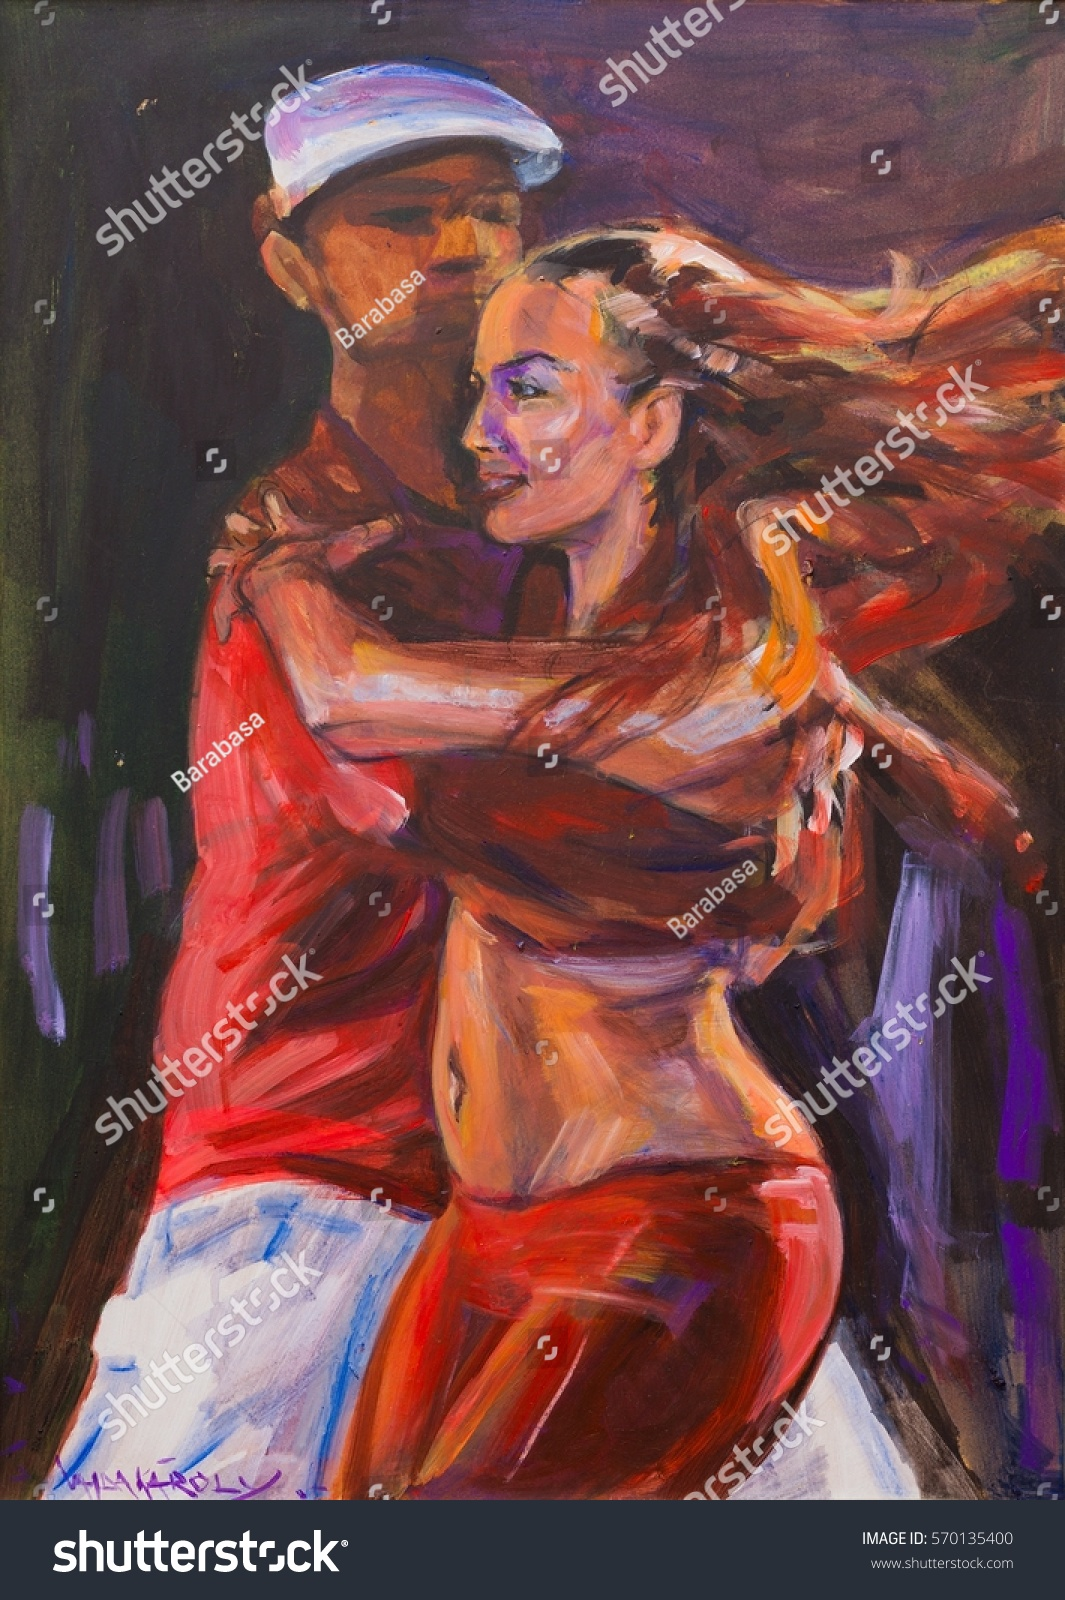 stock-photo-artistic-canvas-painting-of-salsa-dancing-couple-570135400